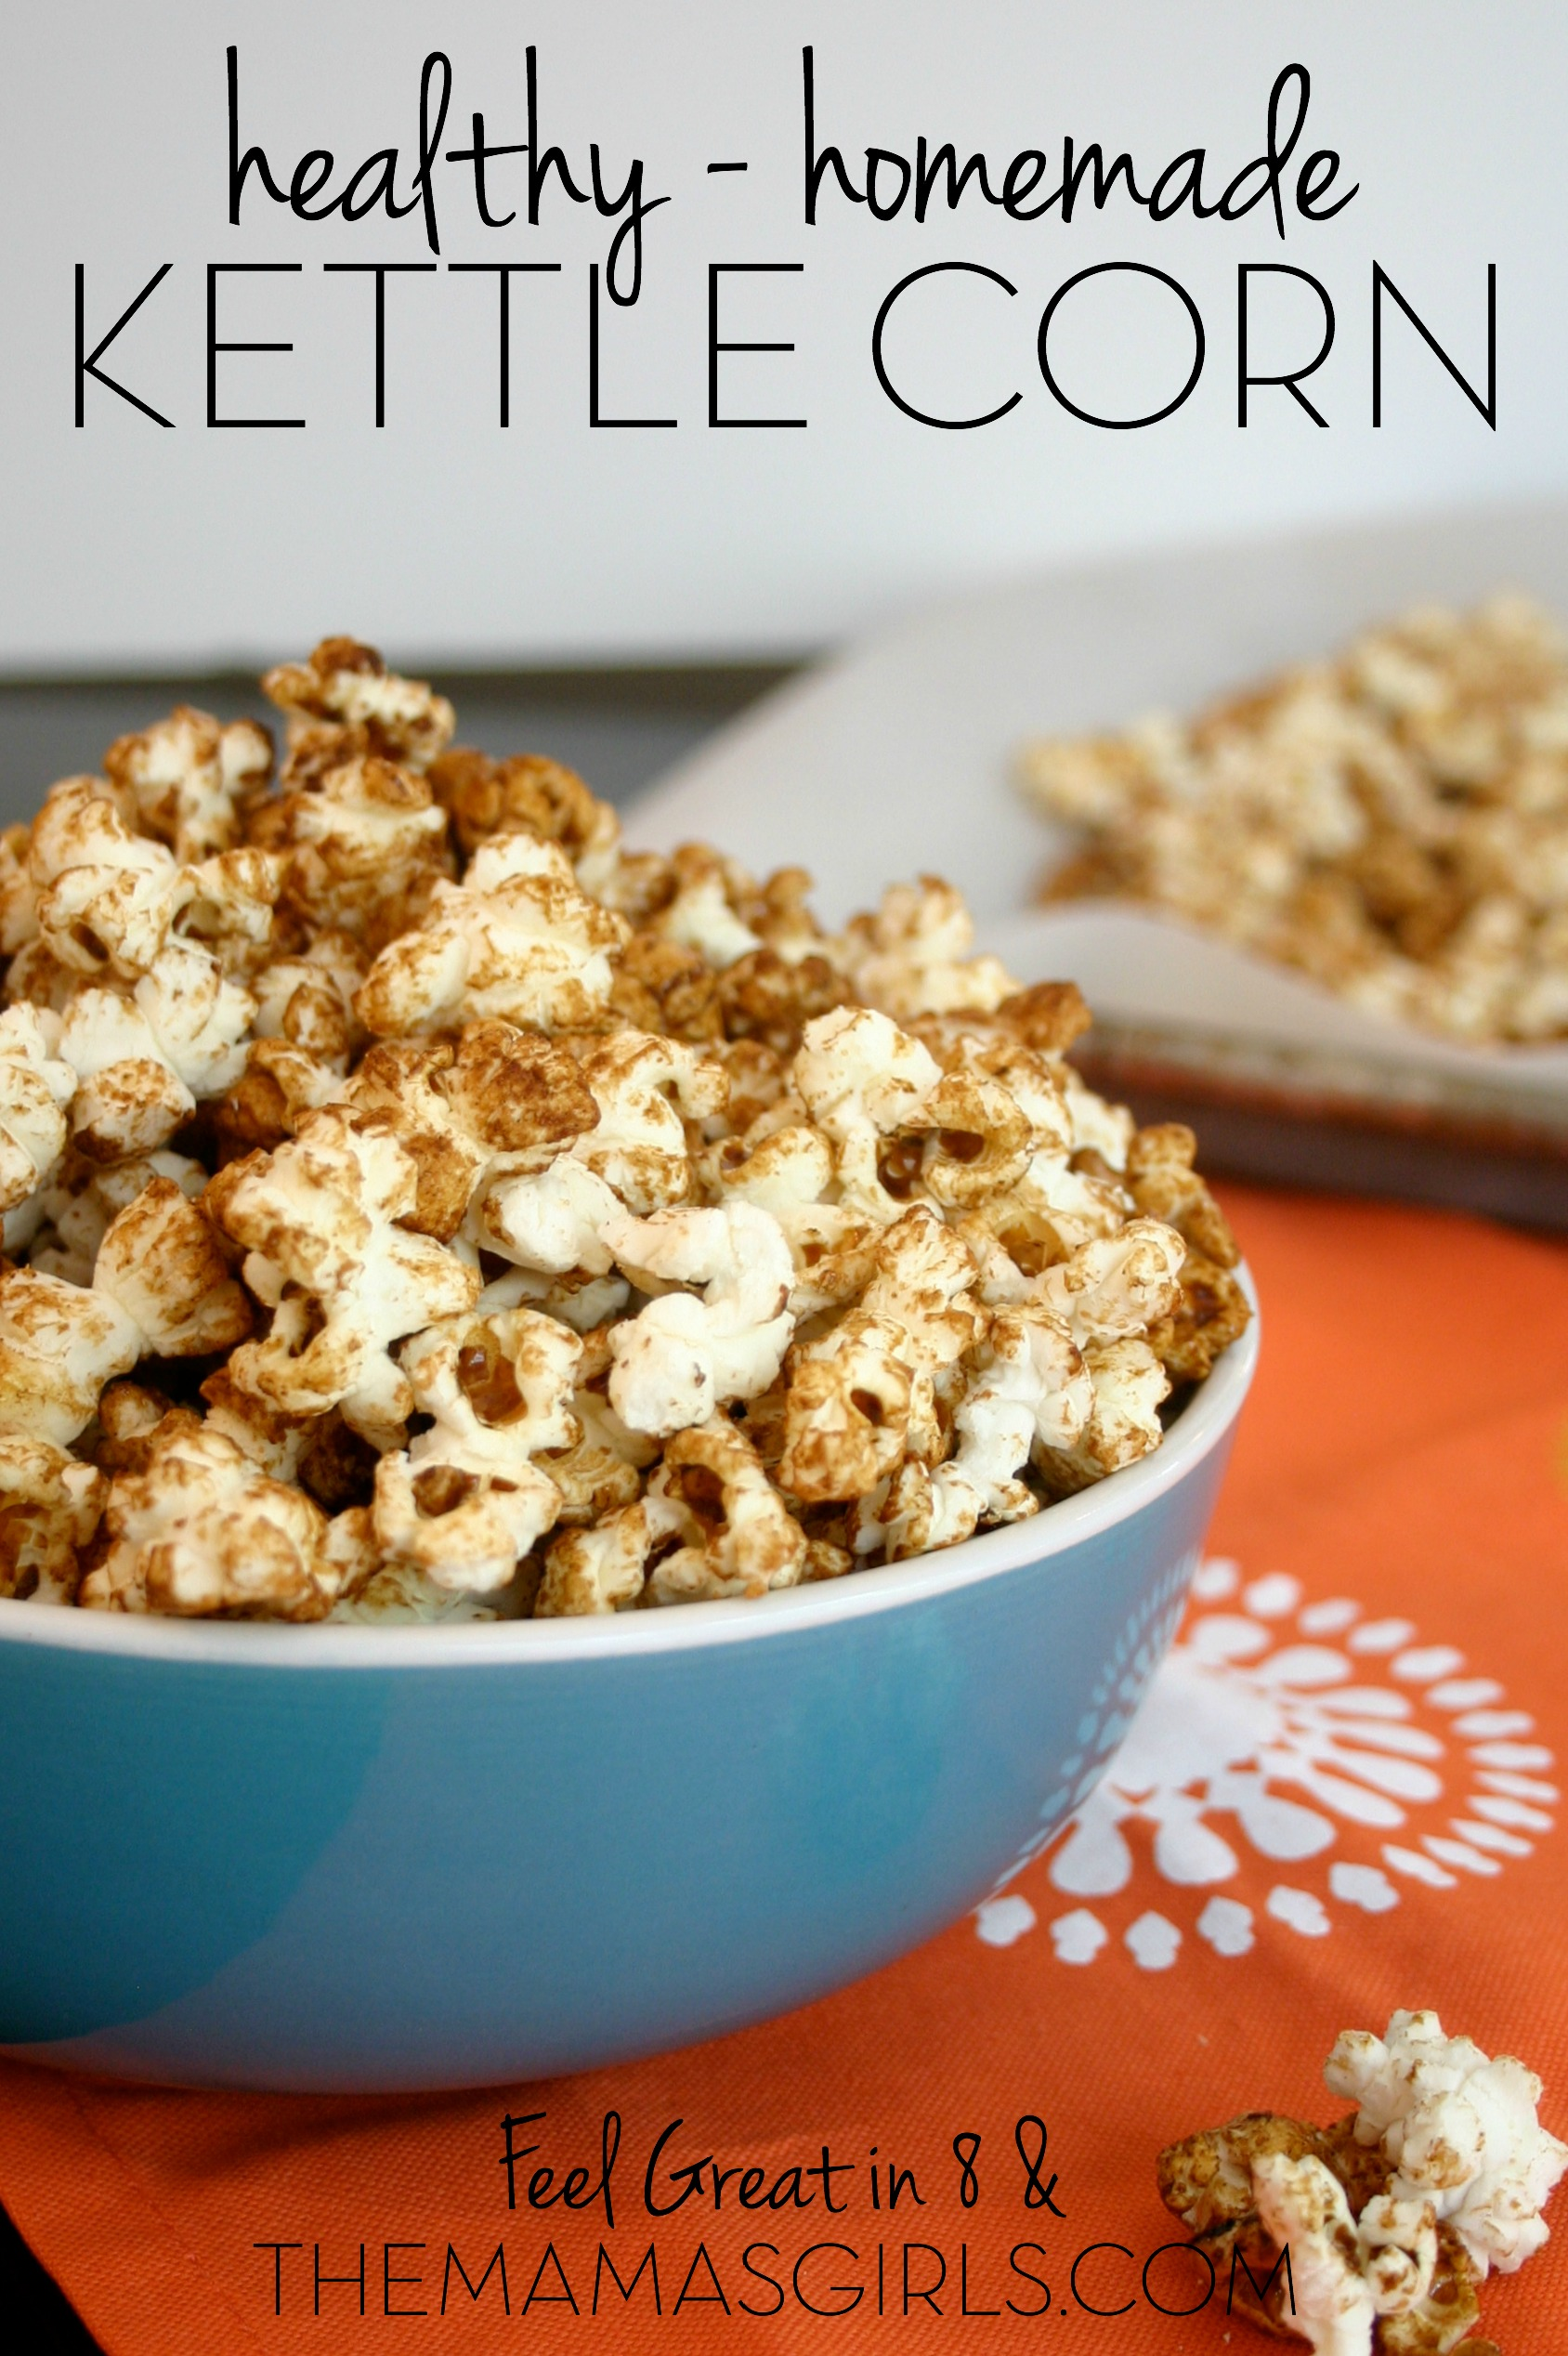 You won't believe how quick and easy it is to make this homemade kettle corn popcorn – no special equipment required! And, by substituting healthy coconut oil and unrefined coconut sugar you can have a healthy, whole grain, sweet and salty snack to enjoy guilt-free. #healthy #dessert #popcorn